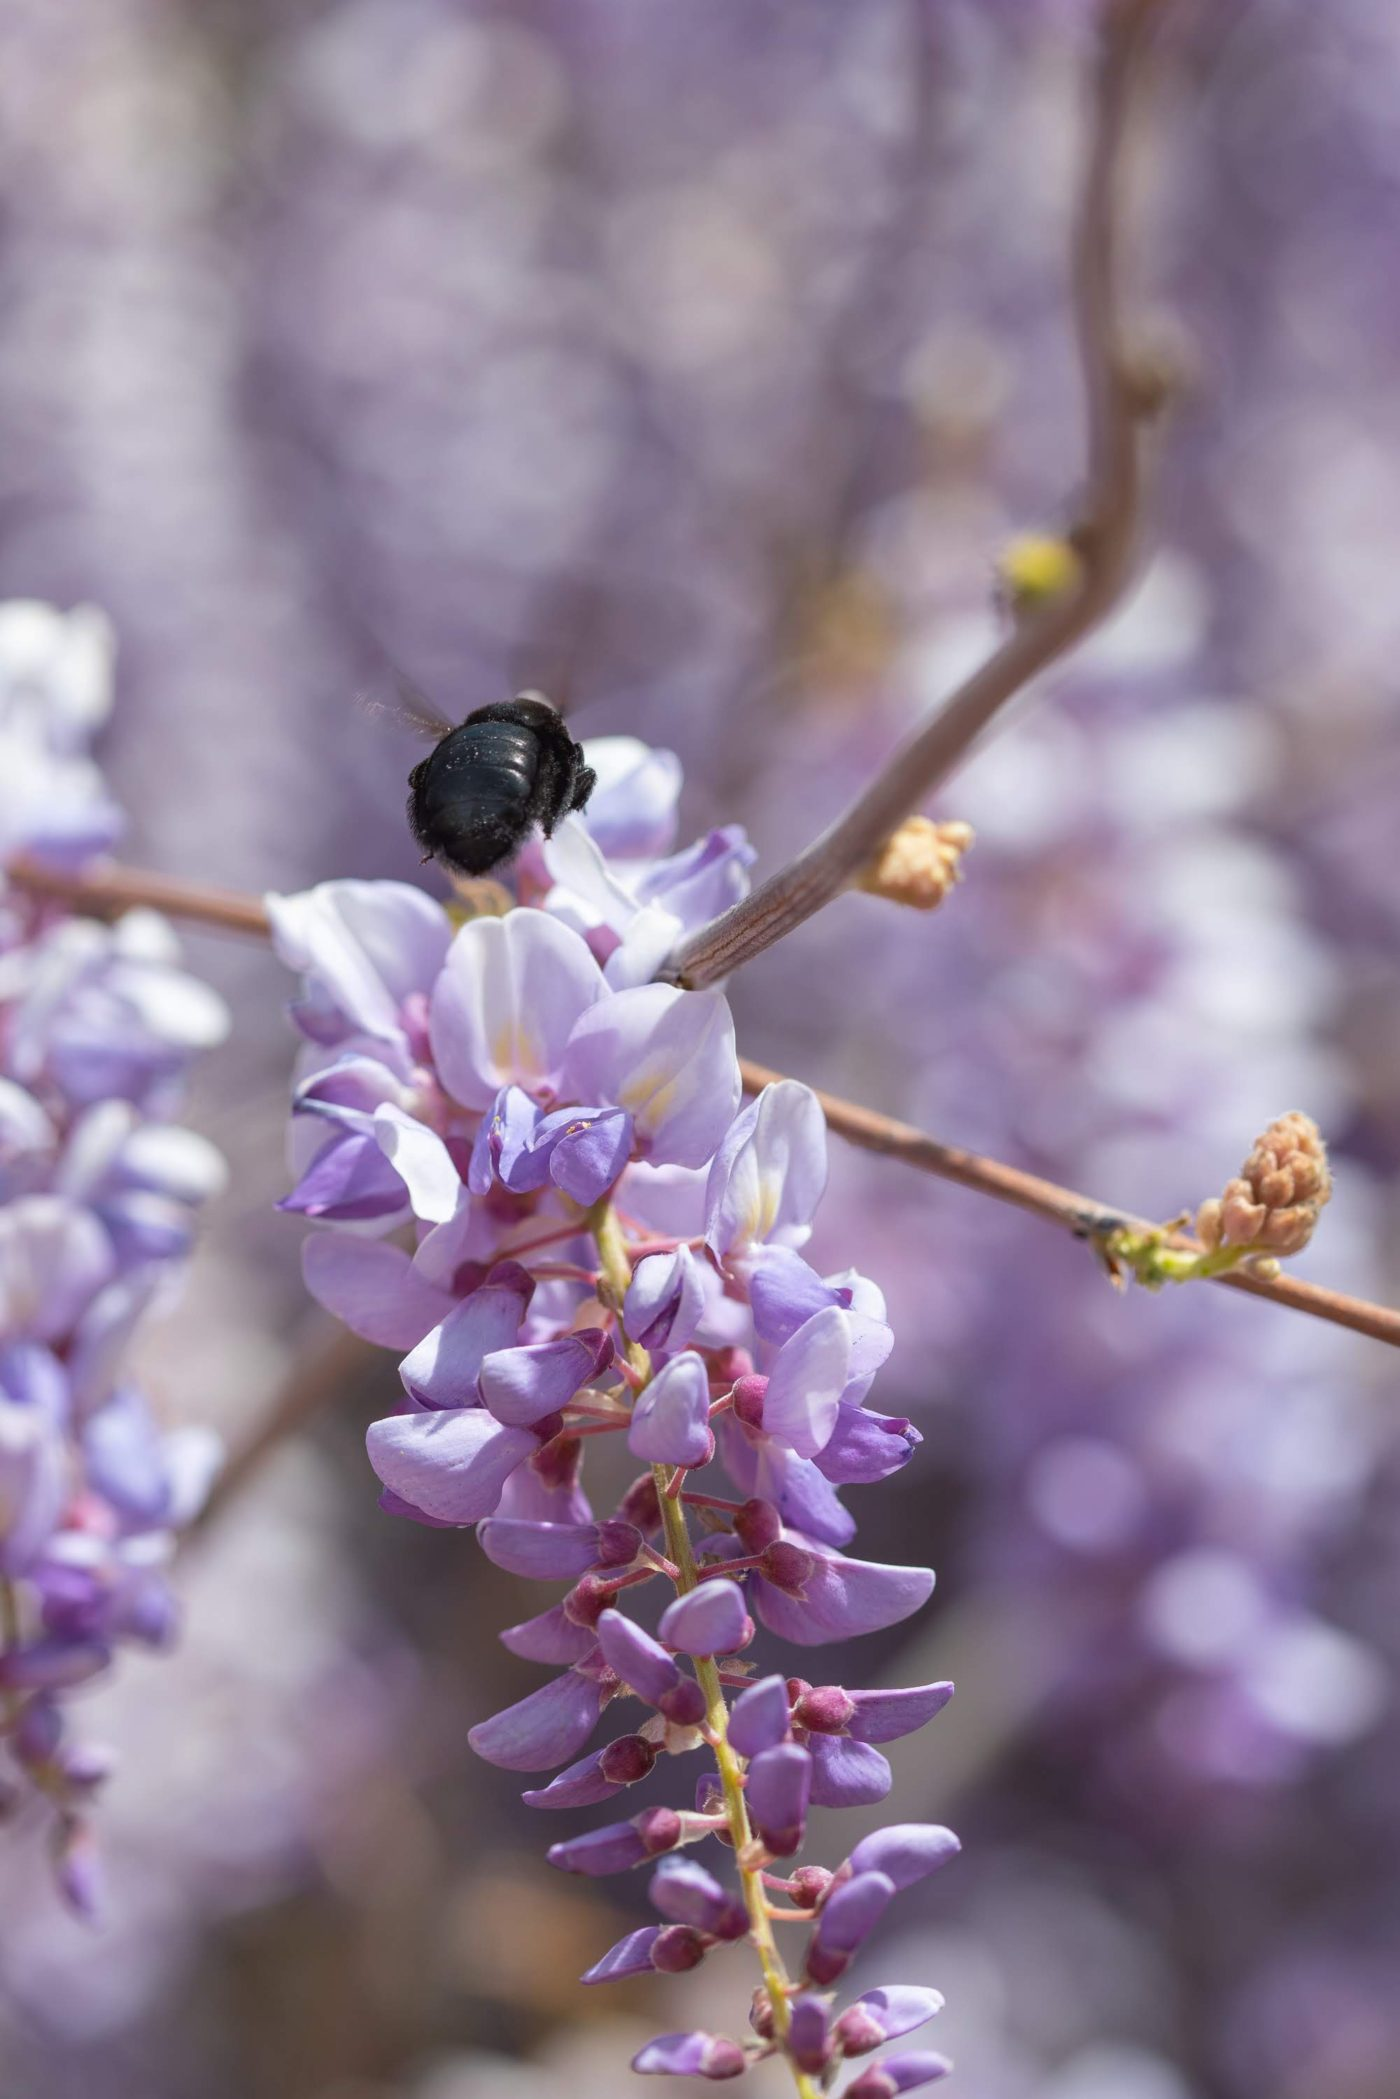 Hovering carpenter bee on wisteria